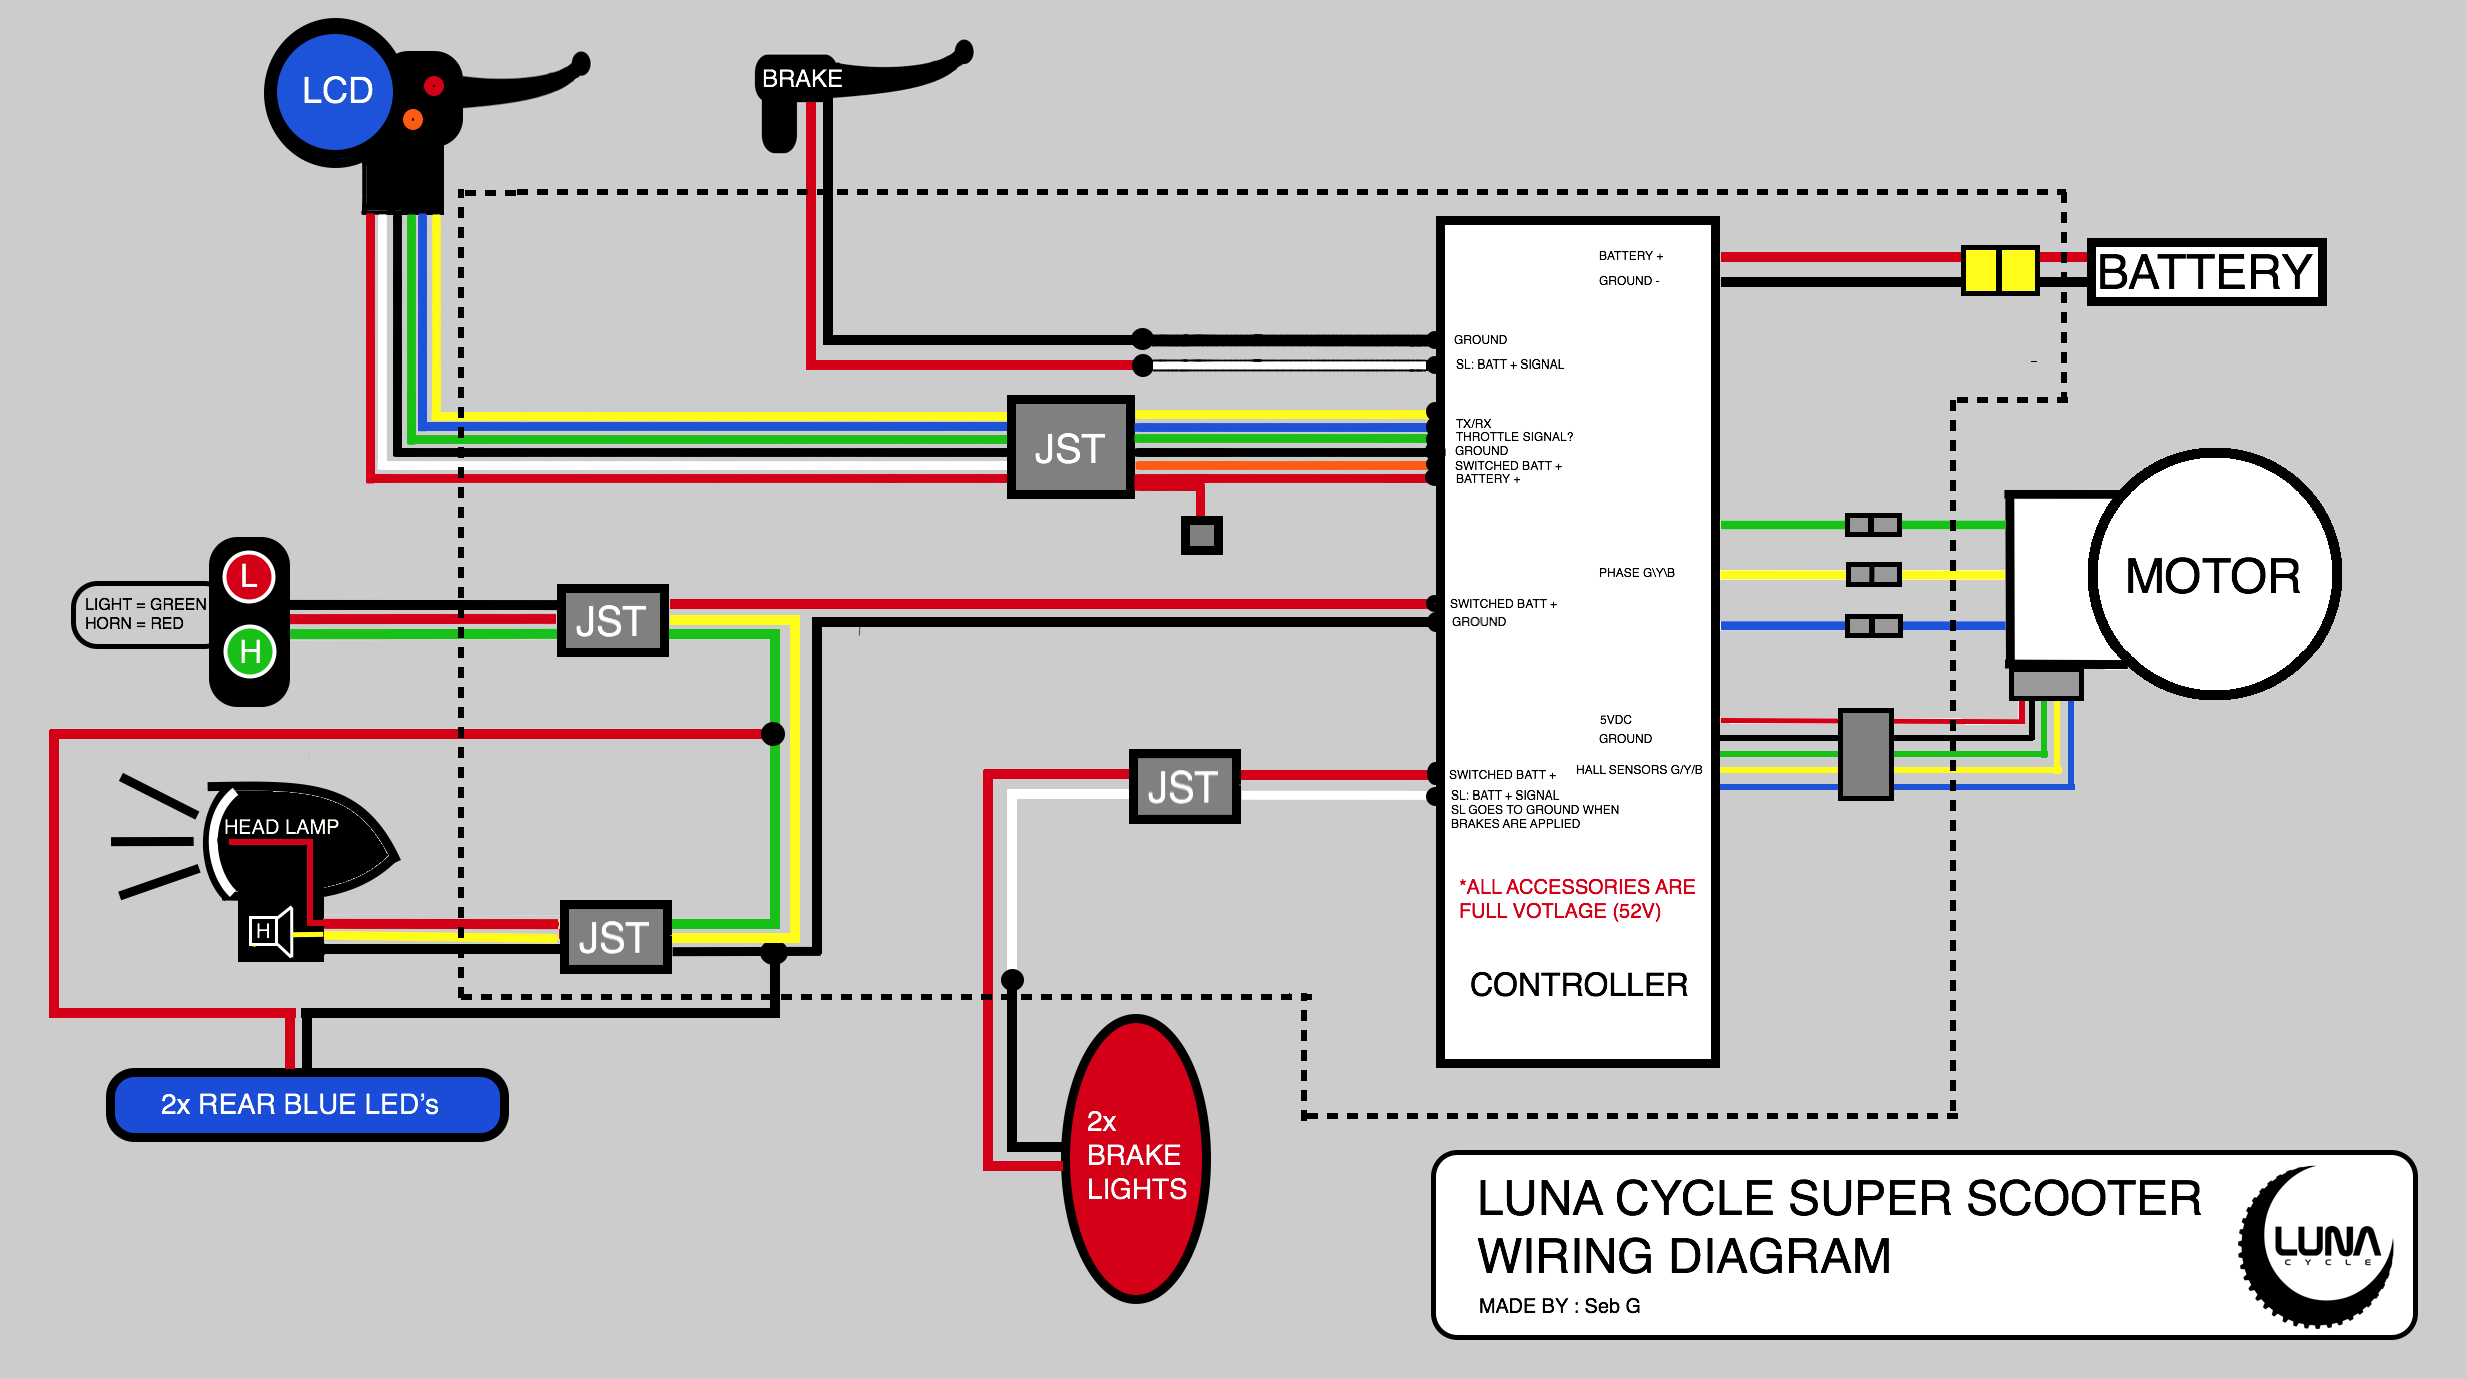 Super Scooter Wiring Diagram